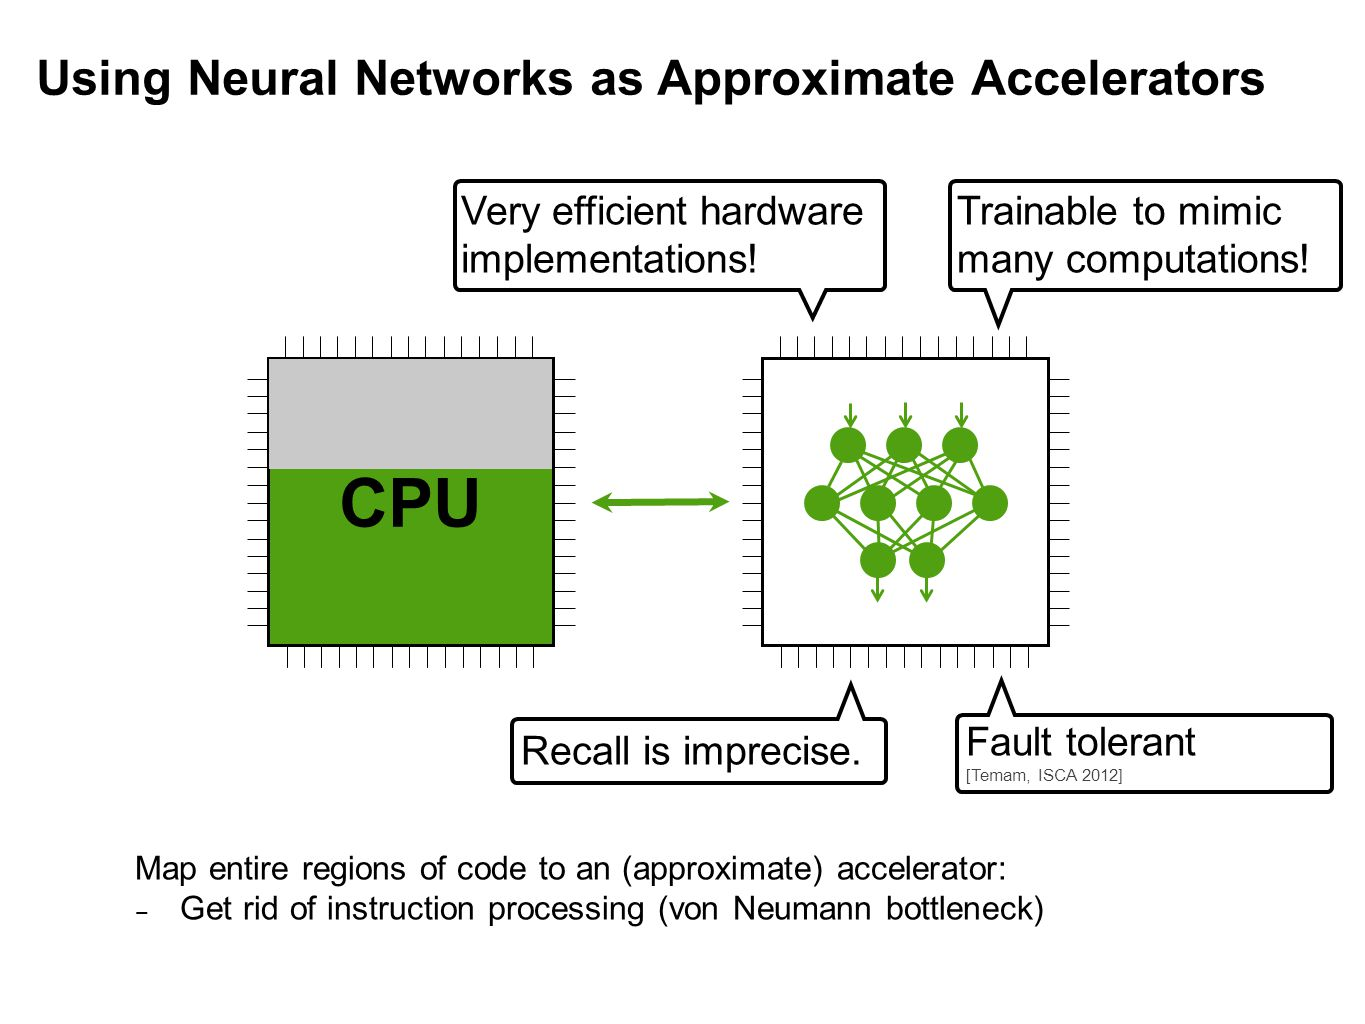 CPU Very efficient hardware implementations! Trainable to mimic many computations! Recall is imprecise. Using Neural Networks as Approximate Accelerat